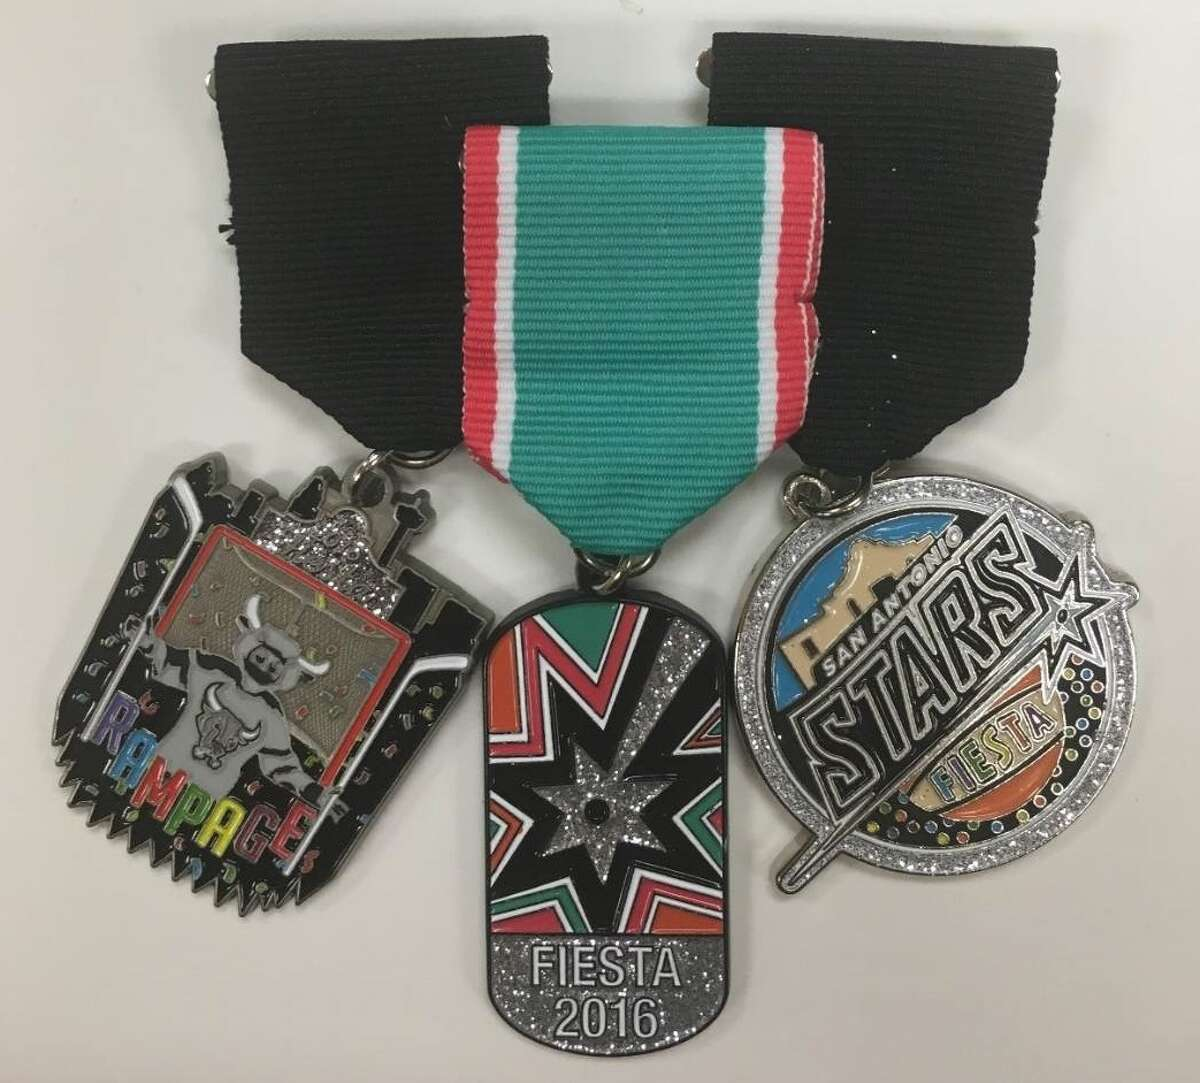 The 2016 Spurs Fiesta medal (center) along with the official Rampage and Stars medals.